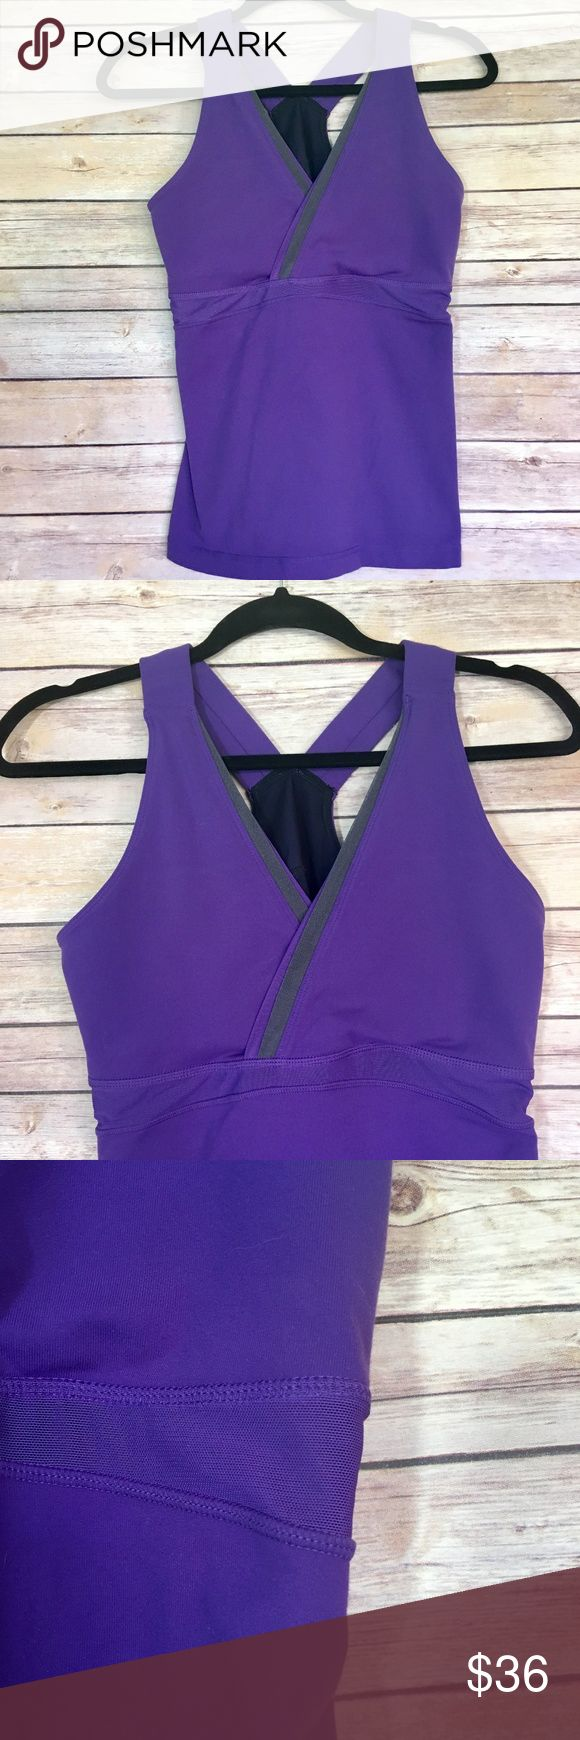 "Lululemon Racerback Mesh Panel V-Neck Tank NWOT Never worn Lululemon sport top. Racerback straps, v-neck, mesh panels for breathability. Small mesh pocket located at lower back. Built in elastic bra. Approx 24"" long. No trades, please. Offers welcome. lululemon athletica Tops Tank Tops"